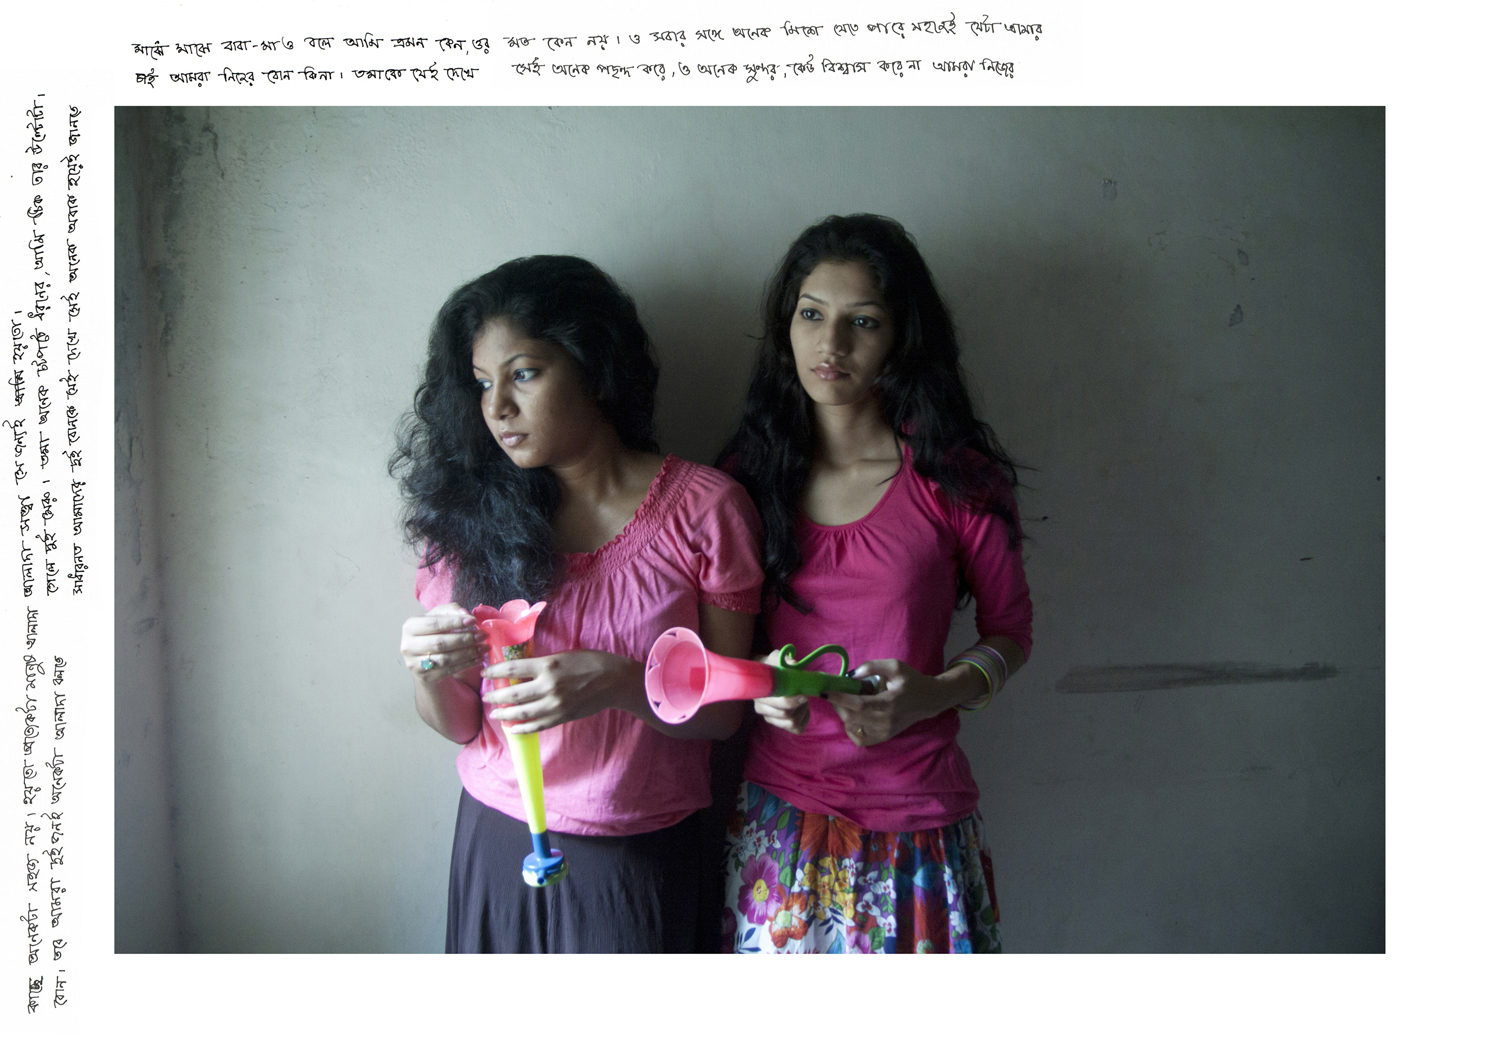 """Dear love  (2012), photography and text. Courtesy of the artist.         Normal    0                false    false    false       EN-GB    X-NONE    HI                                                                                                                                                                                                                                                                                                                                                                                                                                                                                                                                                                                                                                                                                                                                                                                                                                                                                                                                                                                                                                                                                                                                                                                                                                                                  /* Style Definitions */  table.MsoNormalTable {mso-style-name:""""Table Normal""""; mso-tstyle-rowband-size:0; mso-tstyle-colband-size:0; mso-style-noshow:yes; mso-style-priority:99; mso-style-parent:""""""""; mso-padding-alt:0in 5.4pt 0in 5.4pt; mso-para-margin-top:0in; mso-para-margin-right:0in; mso-para-margin-bottom:10.0pt; mso-para-margin-left:0in; line-height:115%; mso-pagination:widow-orphan; font-size:11.0pt; mso-bidi-font-size:10.0pt; font-family:""""Calibri"""",sans-serif; mso-ascii-font-family:Calibri; mso-ascii-theme-font:minor-latin; mso-hansi-font-family:Calibri; mso-hansi-theme-font:minor-latin; mso-bidi-font-family:Mangal; ms"""